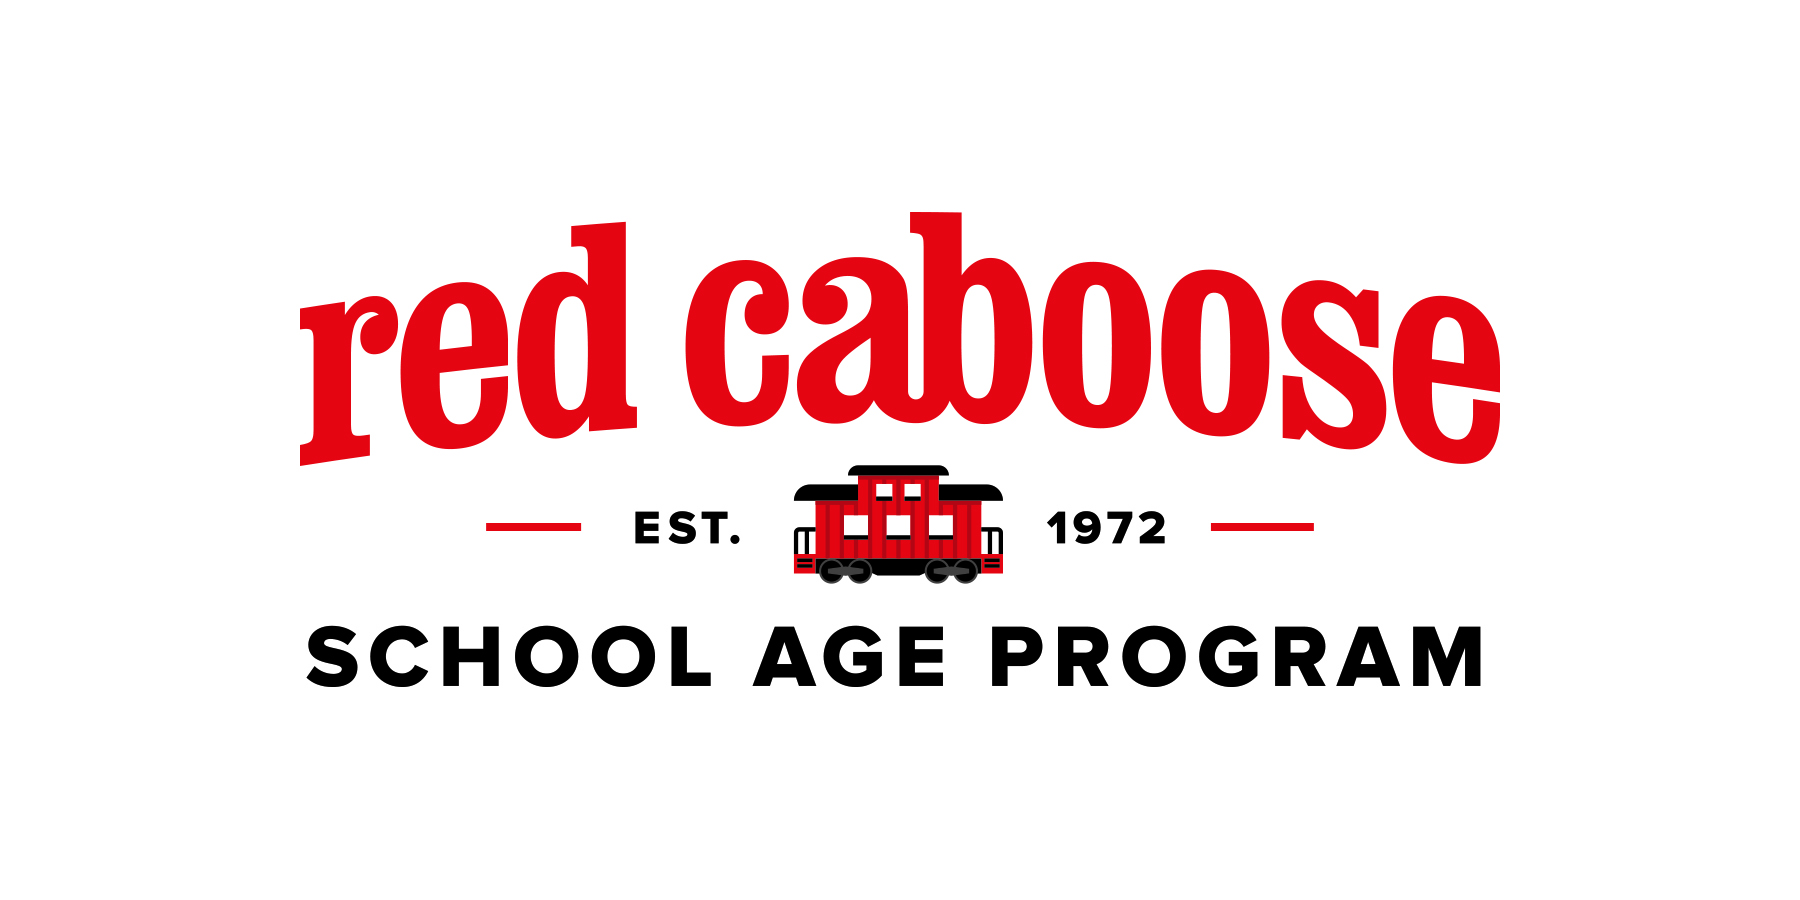 Red Caboose - Lapham Elementary